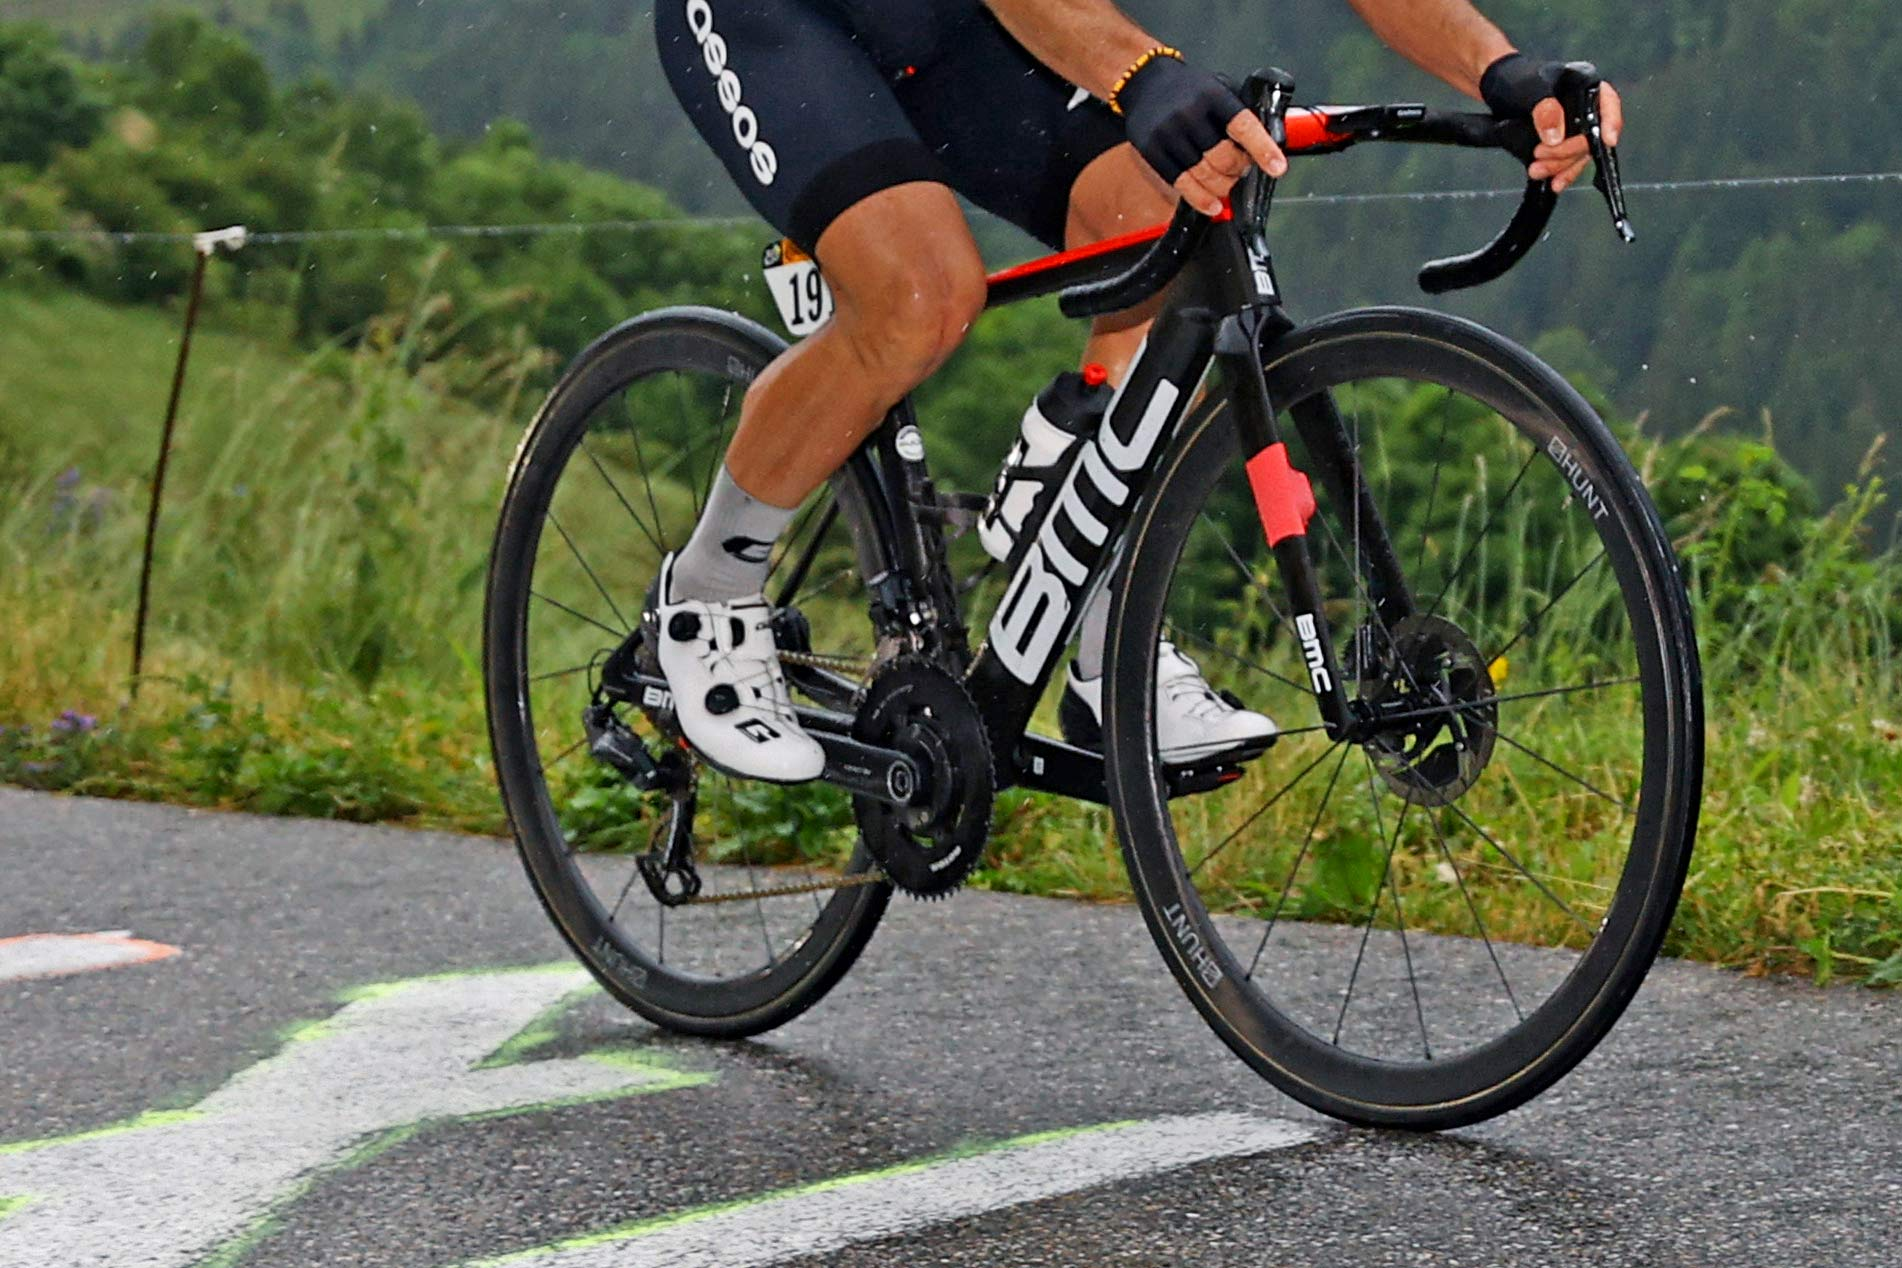 Hunt 36 UD Carbon Spoke Disc Tubular, ultra lightweight 1151g prototype road wheels, Tour de Frnce Stage 8 photos by Damian Murphy ©GettySport, riding